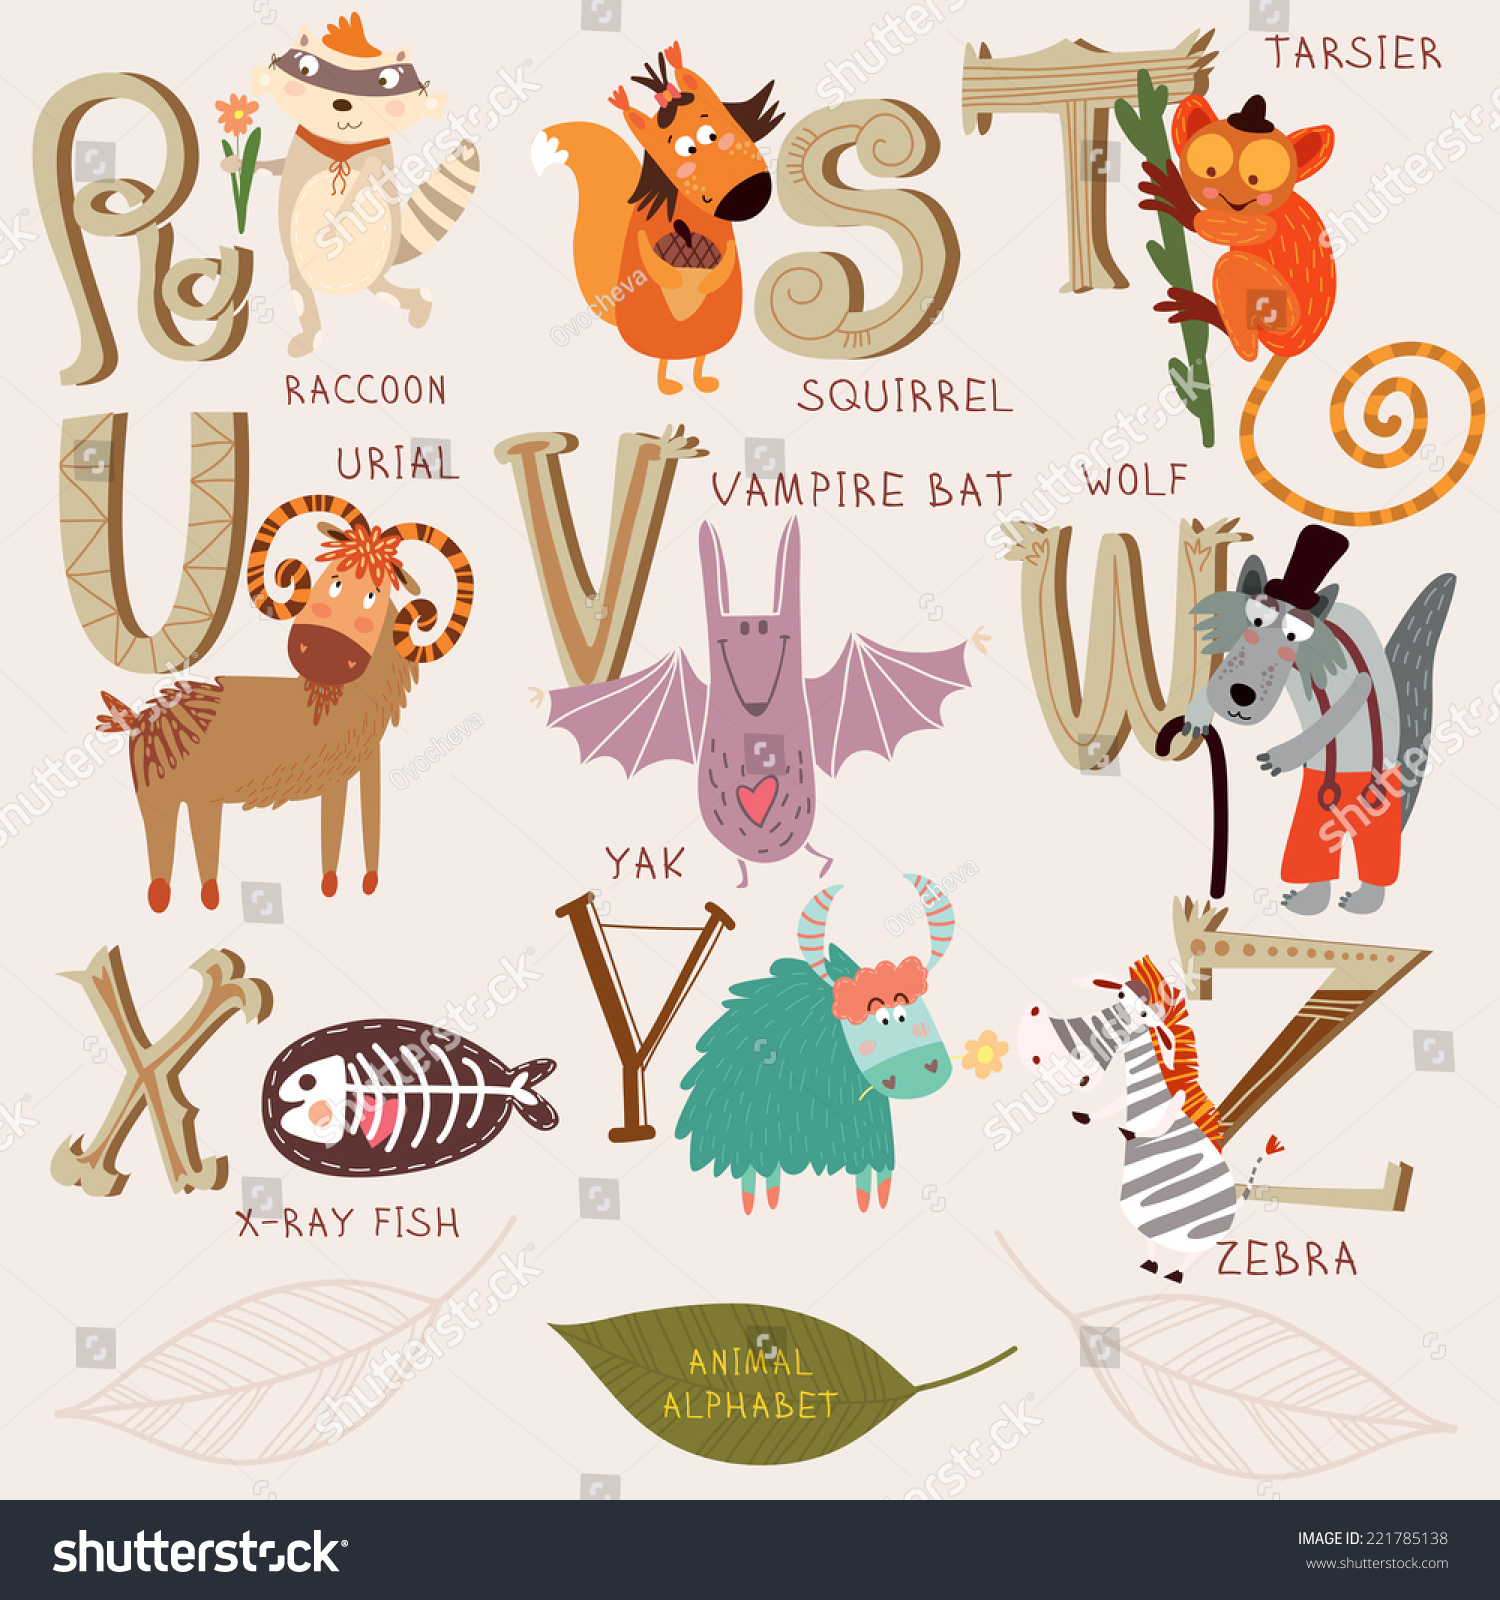 Printables Starts With Letter X animal that starts with the letter x well i had to change my m start u cute alphabet r s t v w x